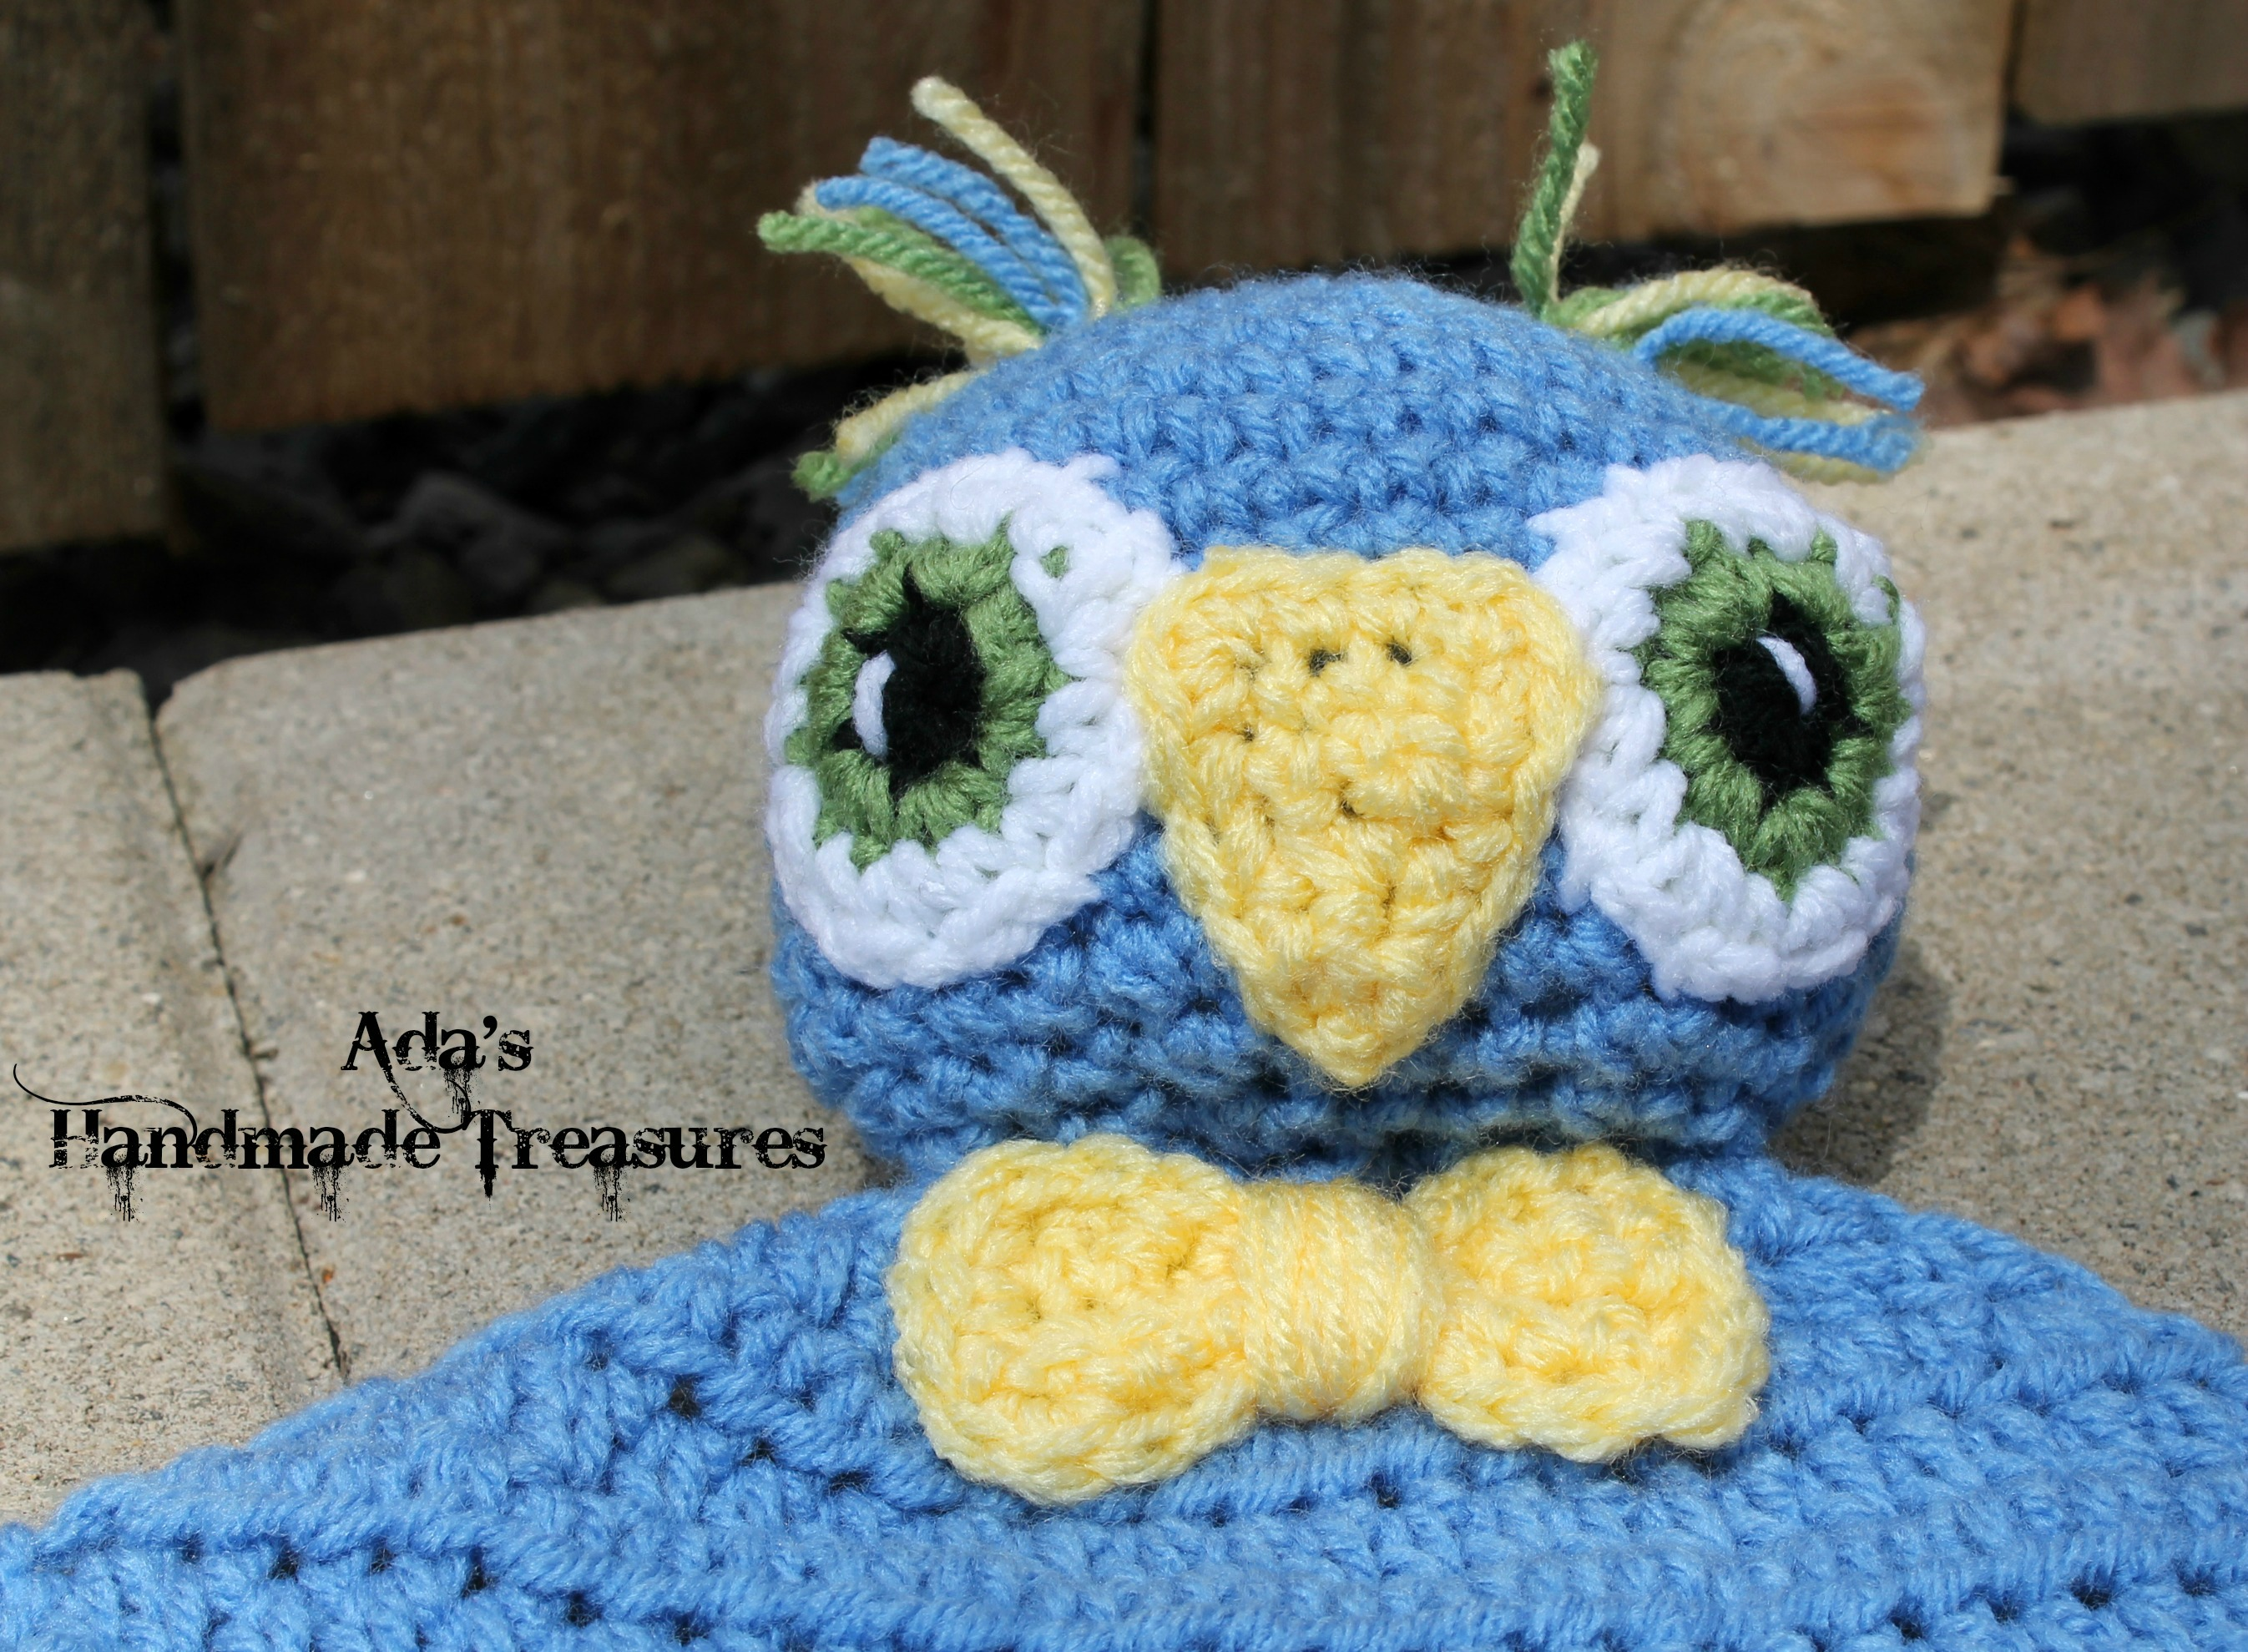 Crochet Owl Blanket : crochet cuddle blanket owl $ 20 00 on sale boy owl girl owl added to ...